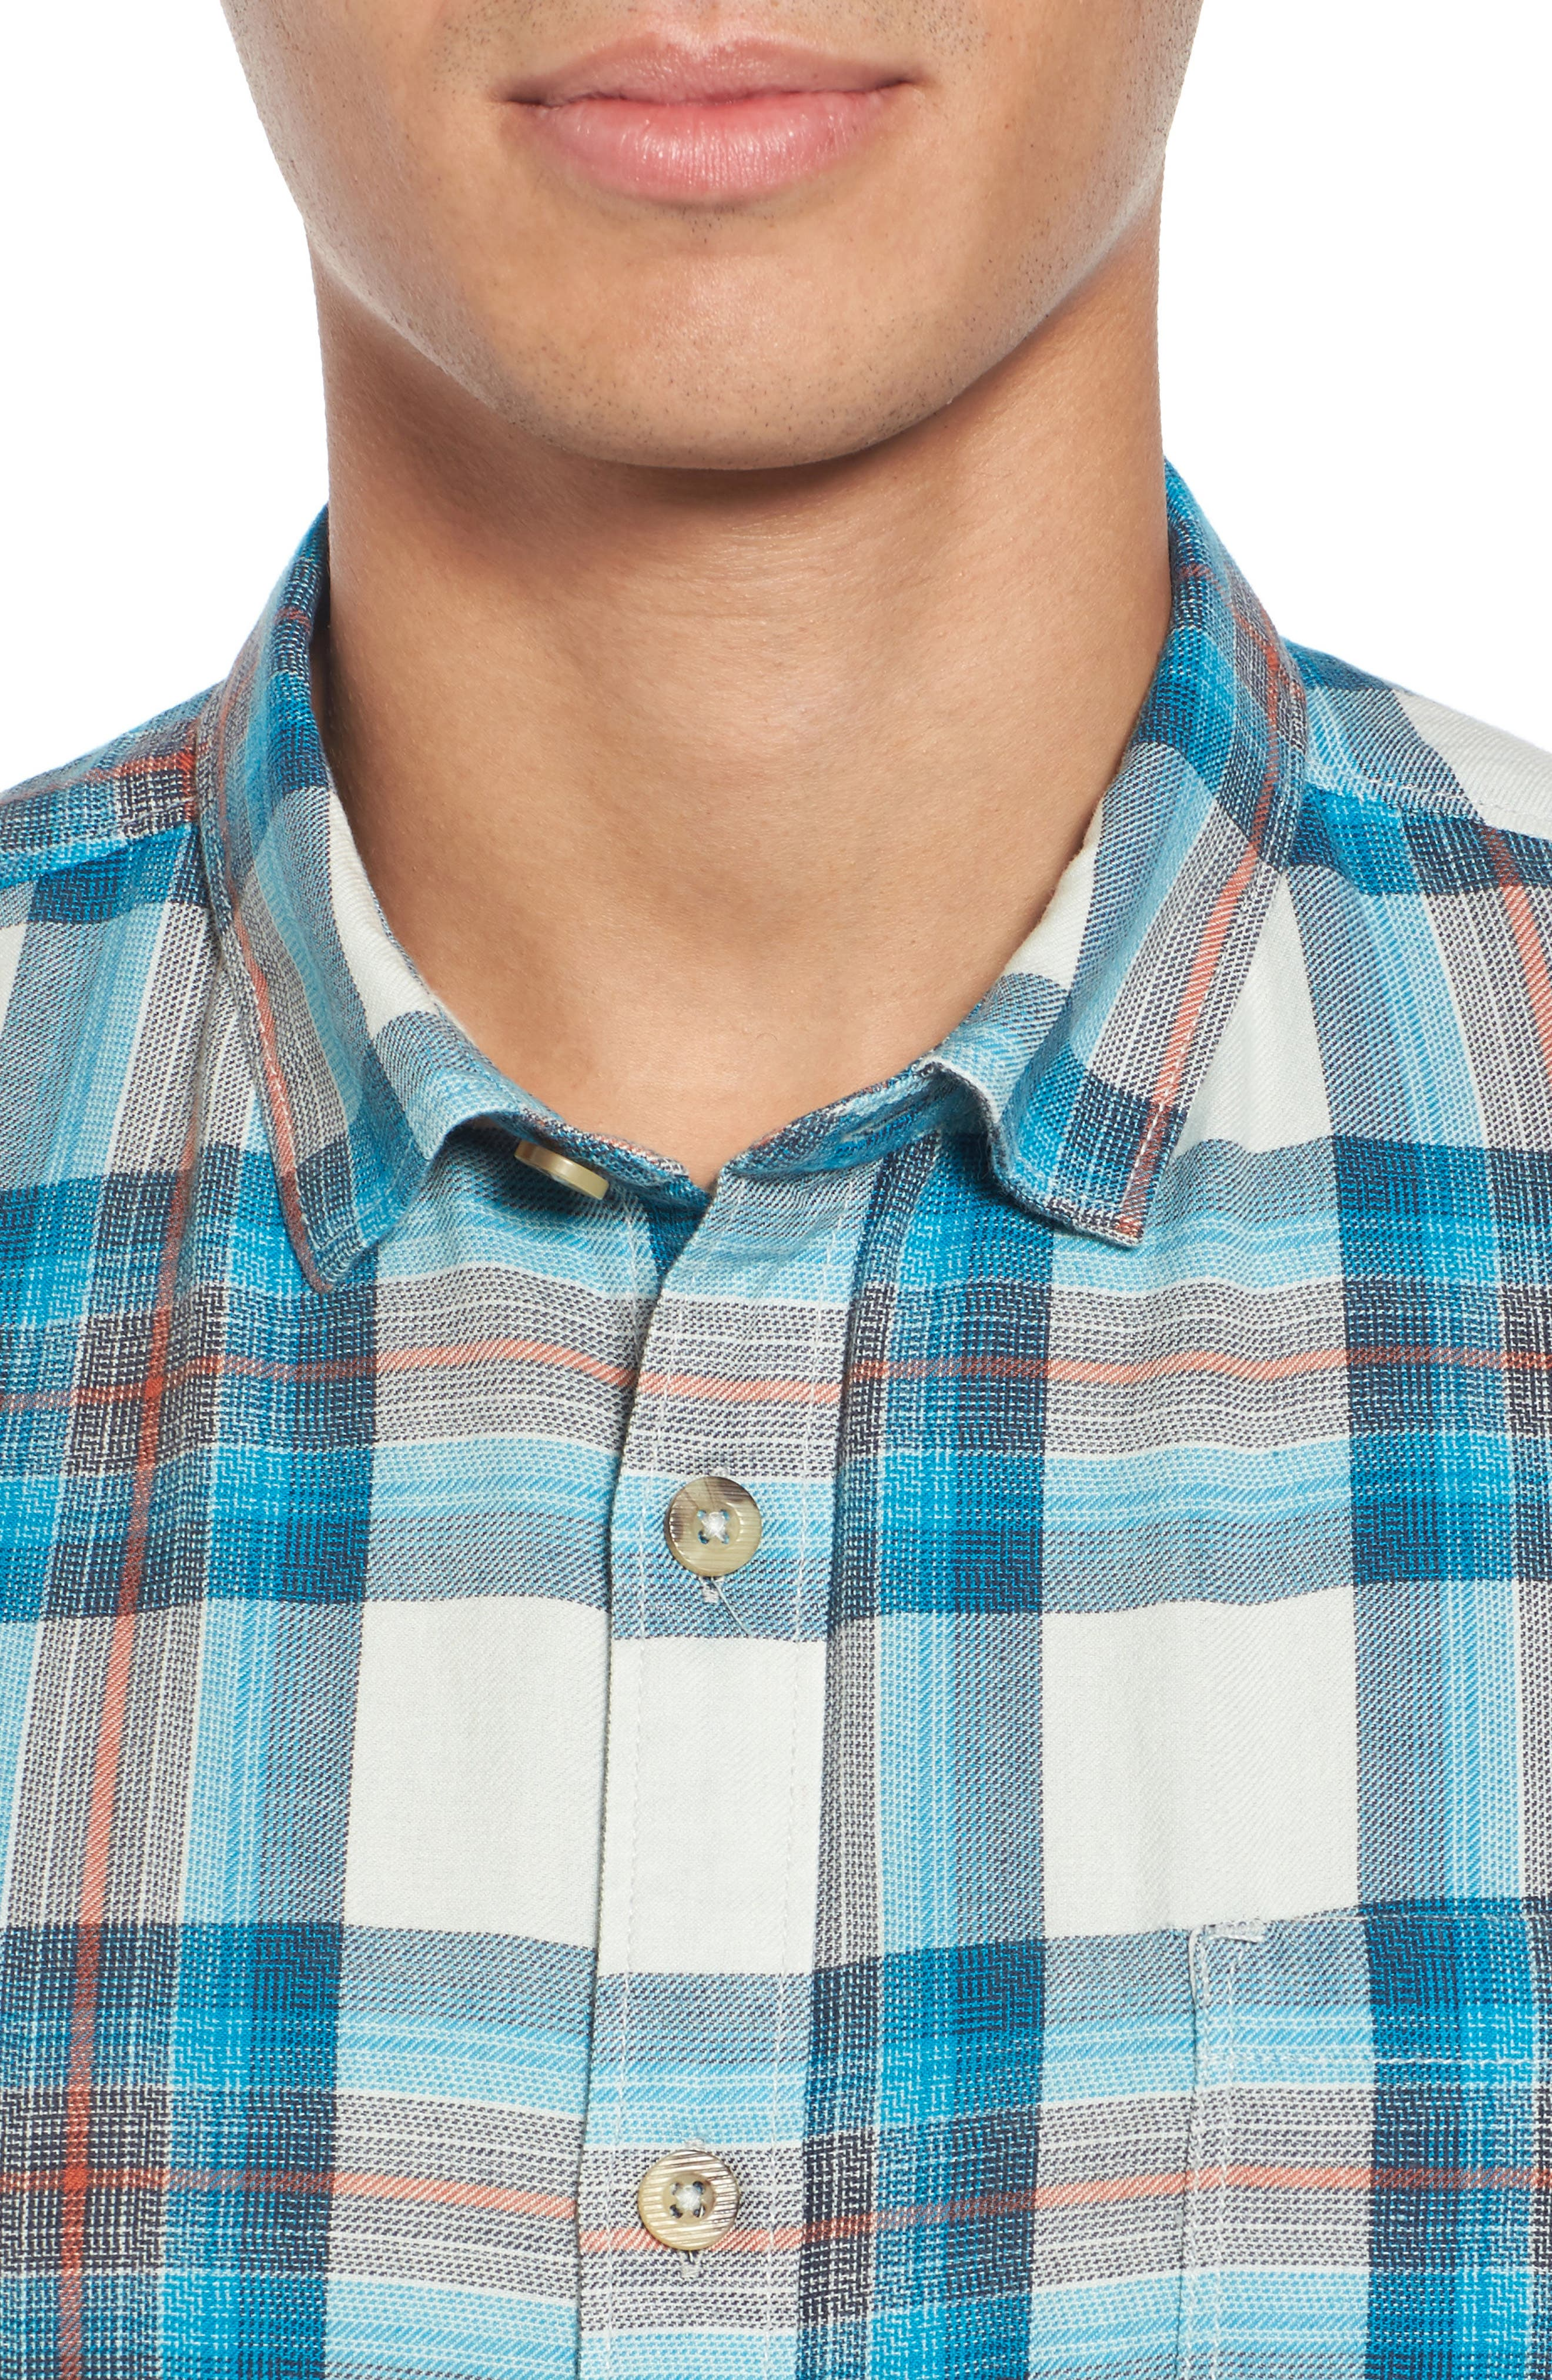 Freemont Flannel Shirt,                             Alternate thumbnail 4, color,                             020